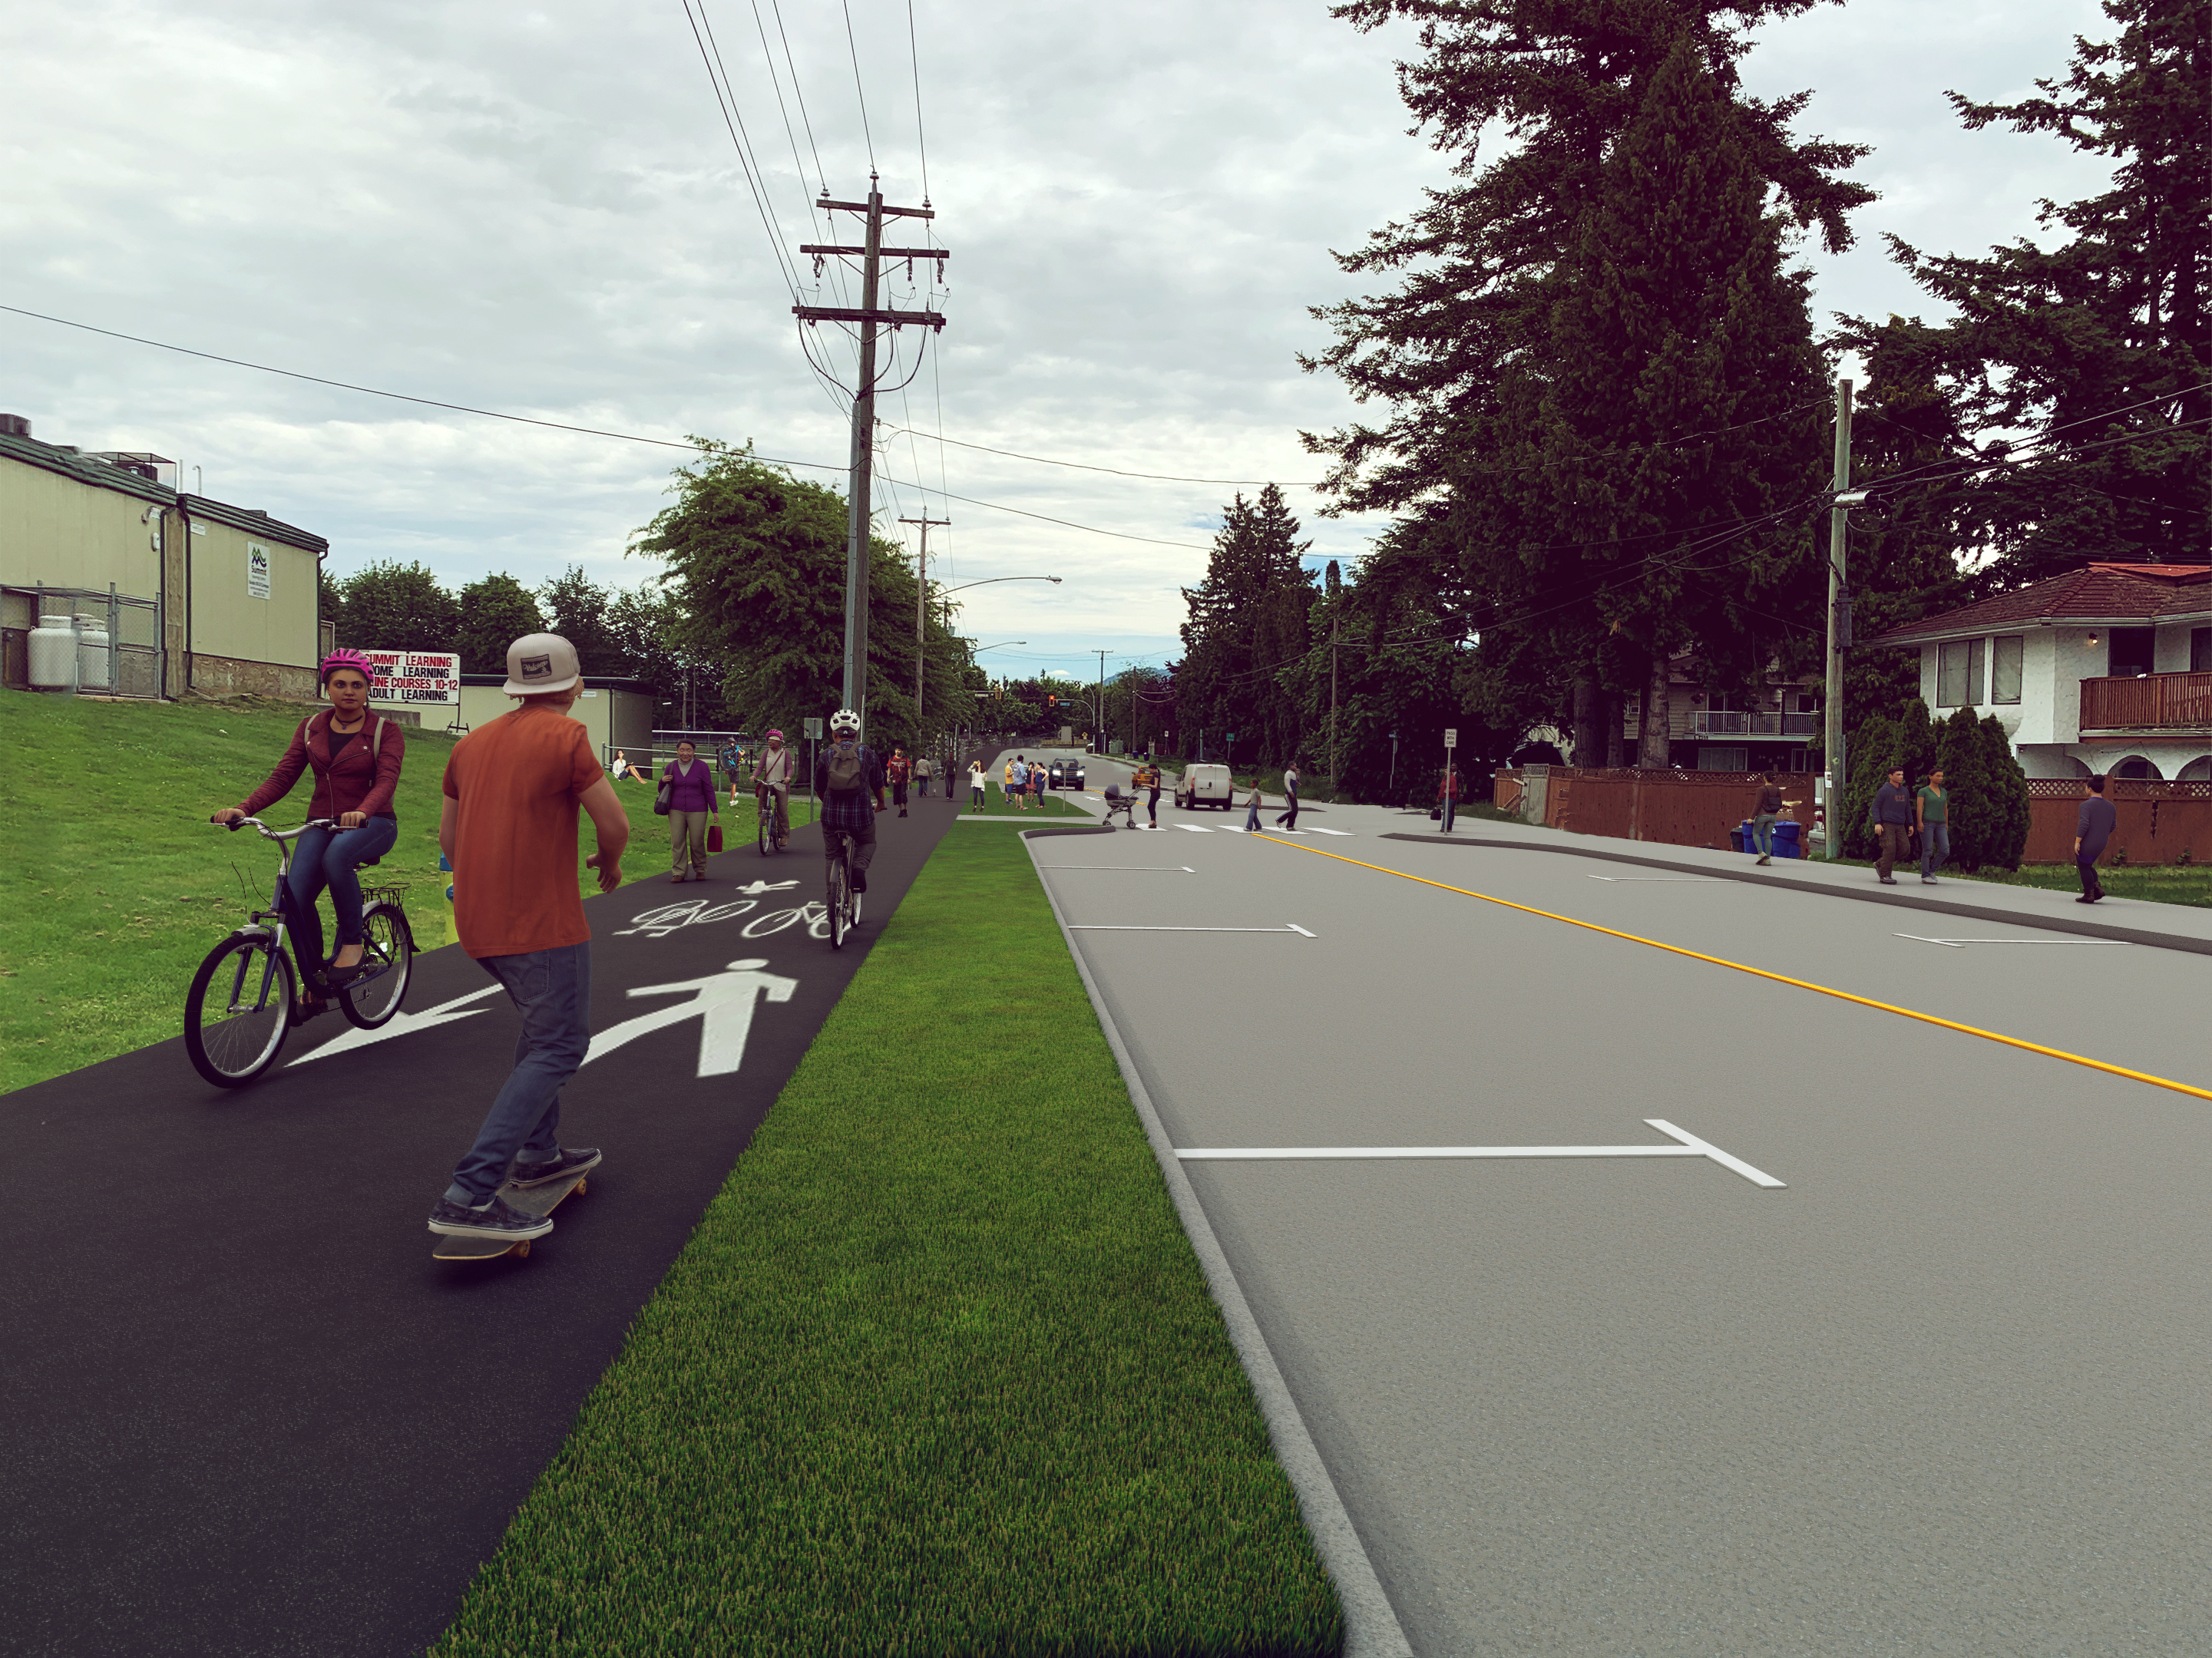 Image of Option3: Hybrid Multi-Use Pathway and Two-Way Protected Bicycle Lane